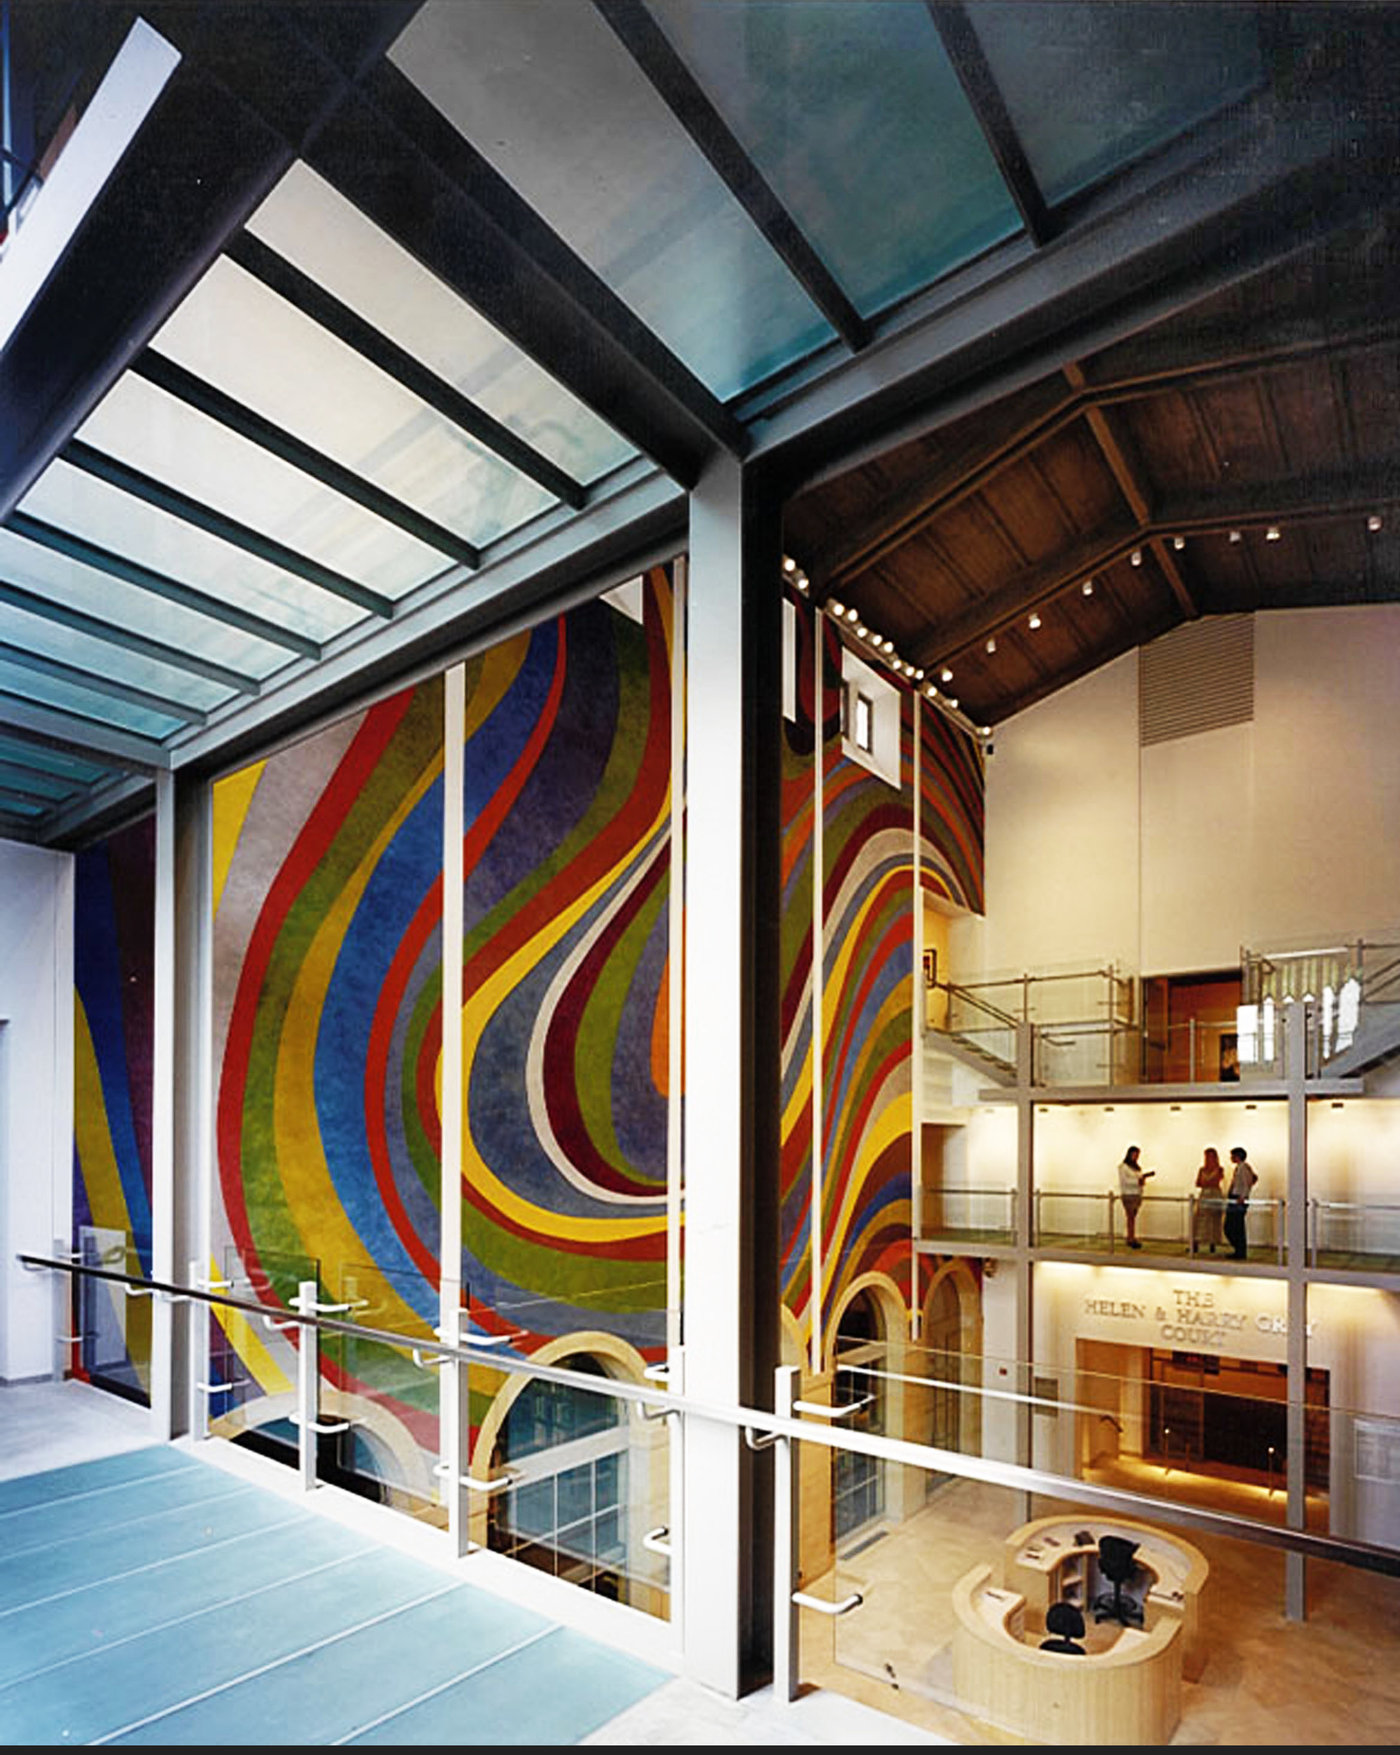 5 tskp wadsworth atheneum the helen and harry gray court glass bridges level 2 above main entrance mural shot 1400 xxx q85